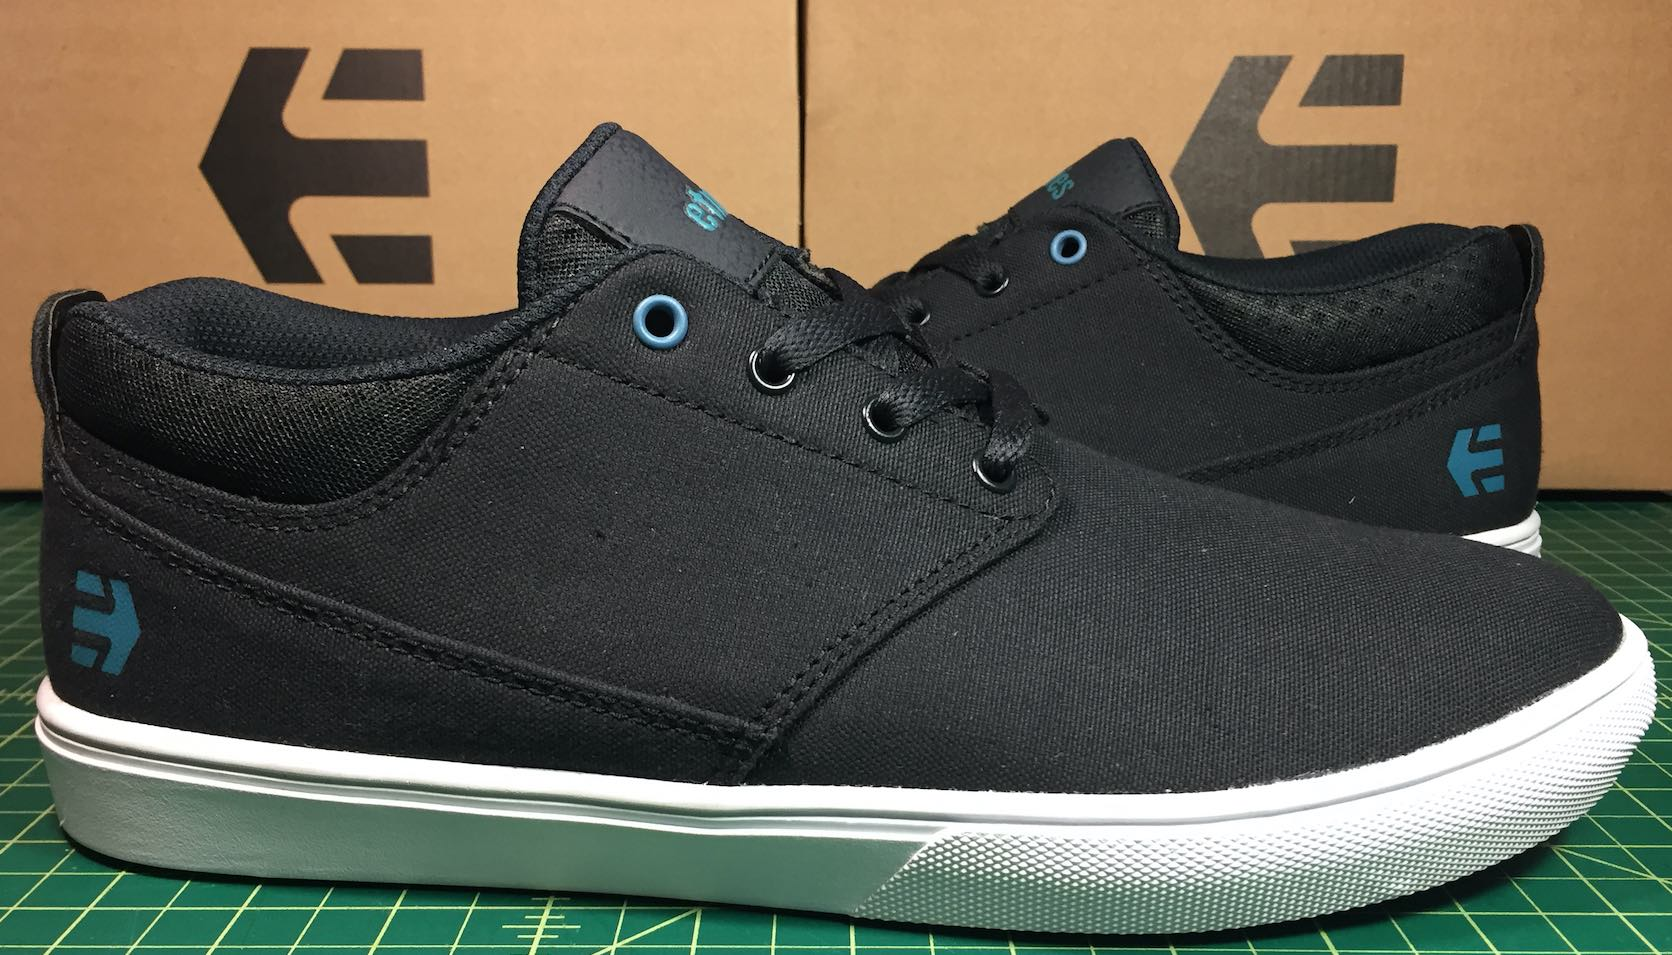 Etnies Vegan Skateboard Shoes Canvas Jameson MT Bloodline